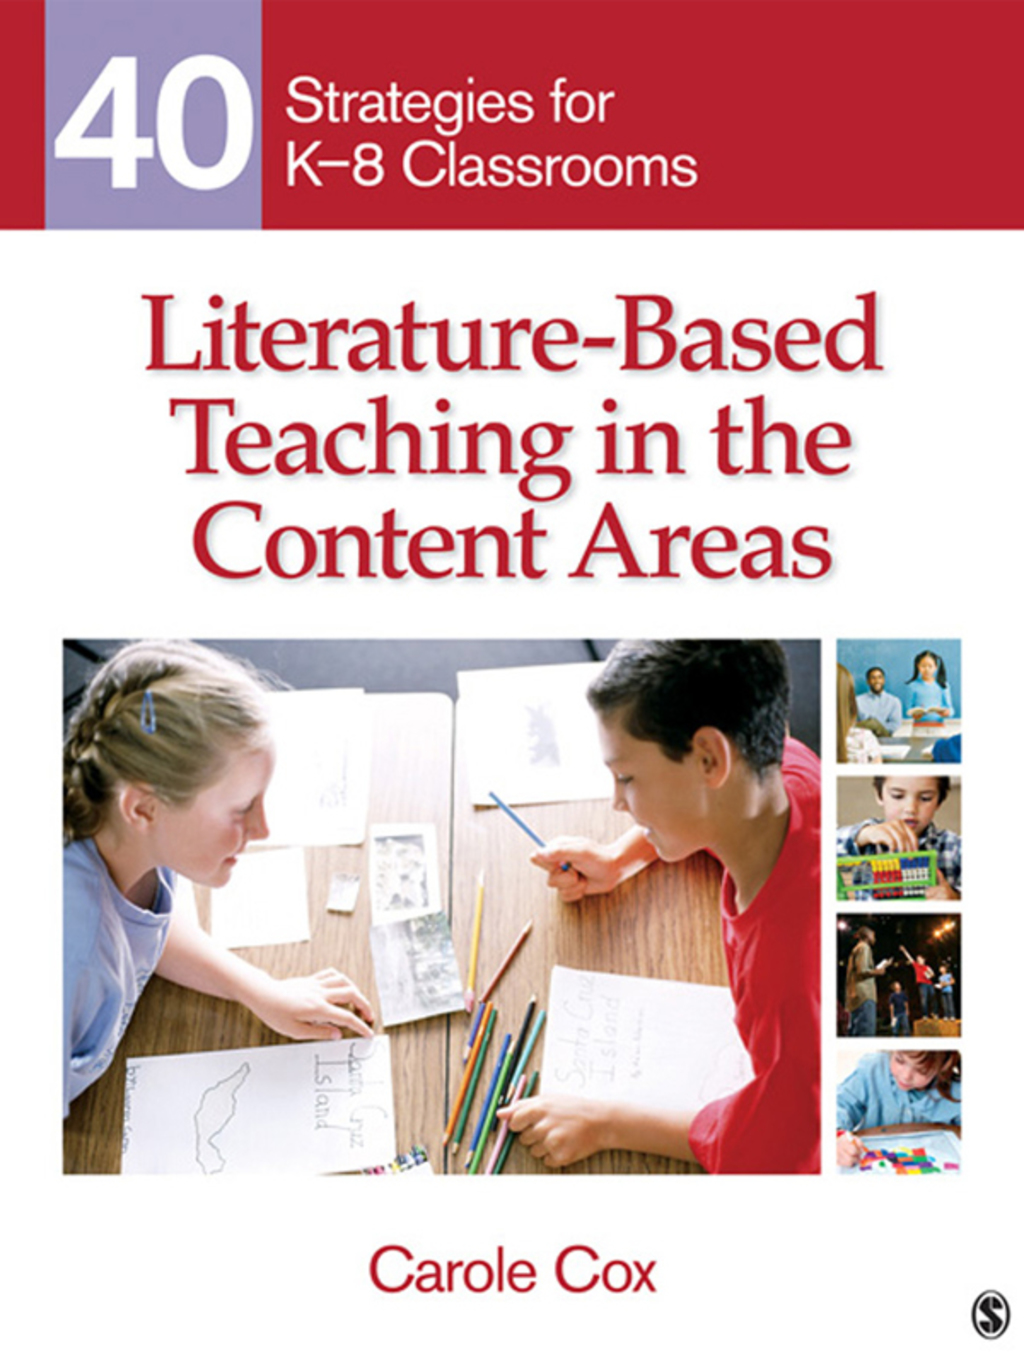 Literature-Based Teaching in the Content Areas (ebook) eBooks